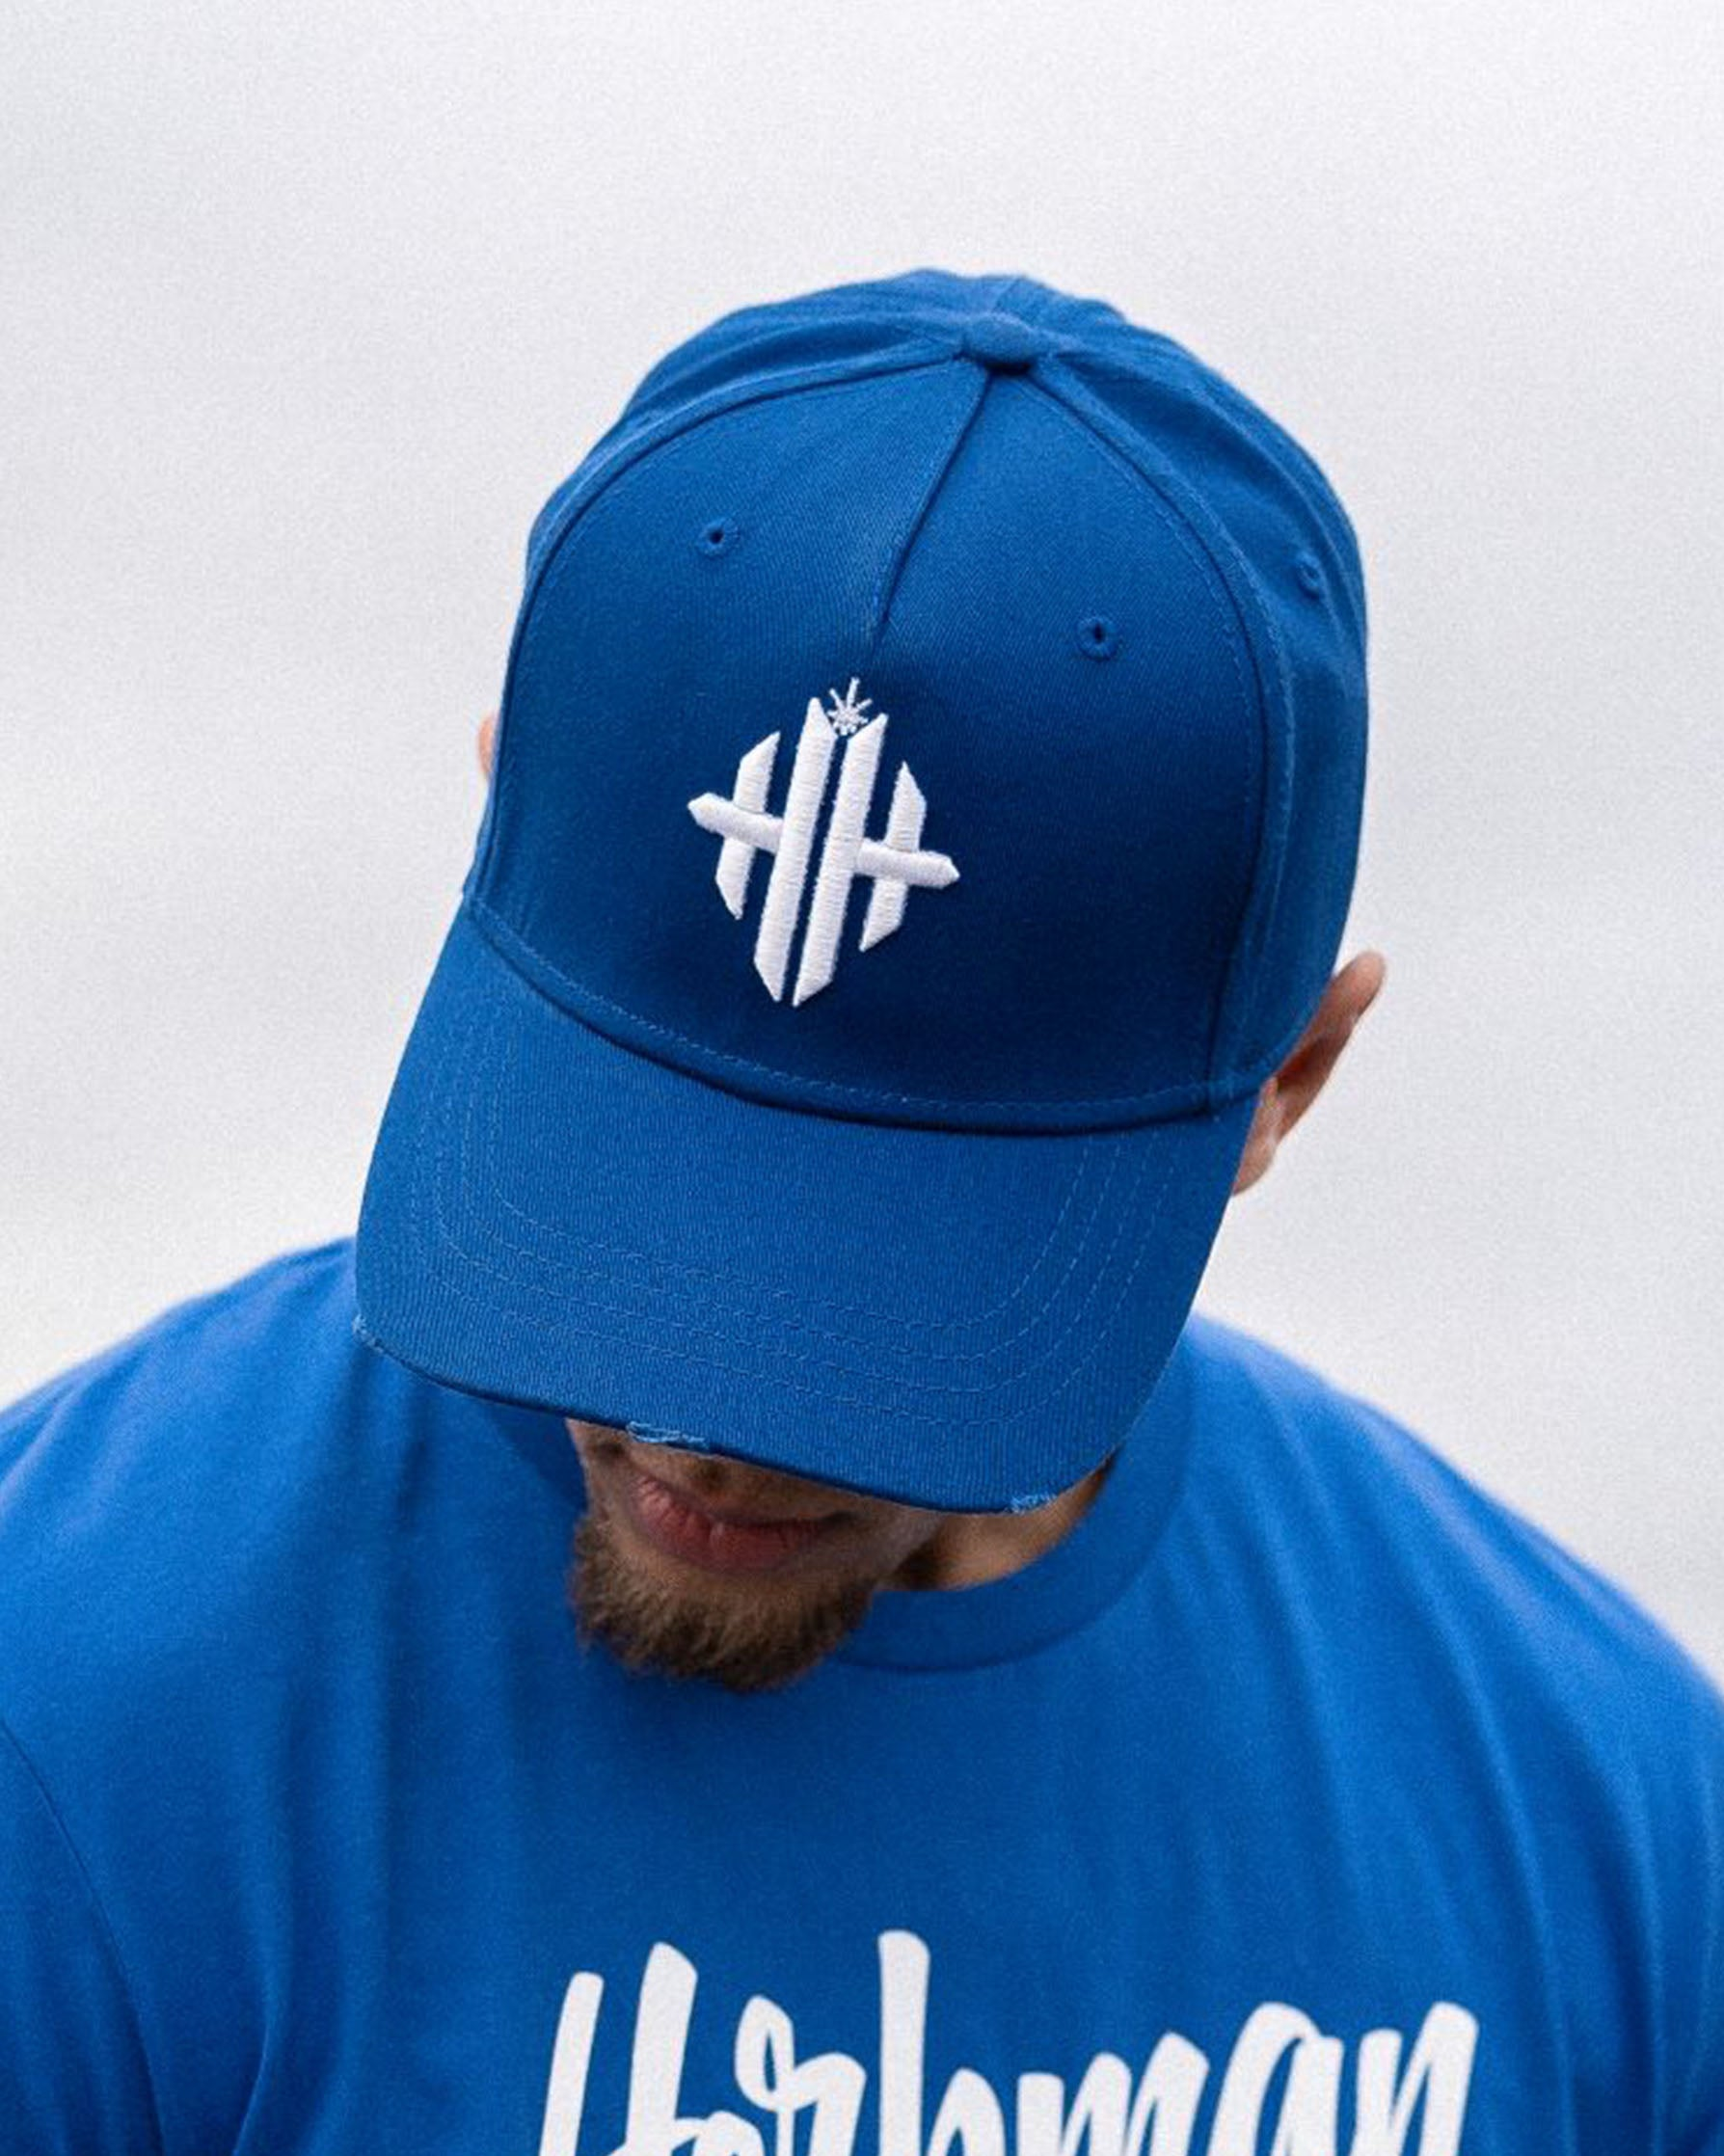 Herbman Hustlin Monogram Cap - Blue/White - LIMITED EDITION - Front